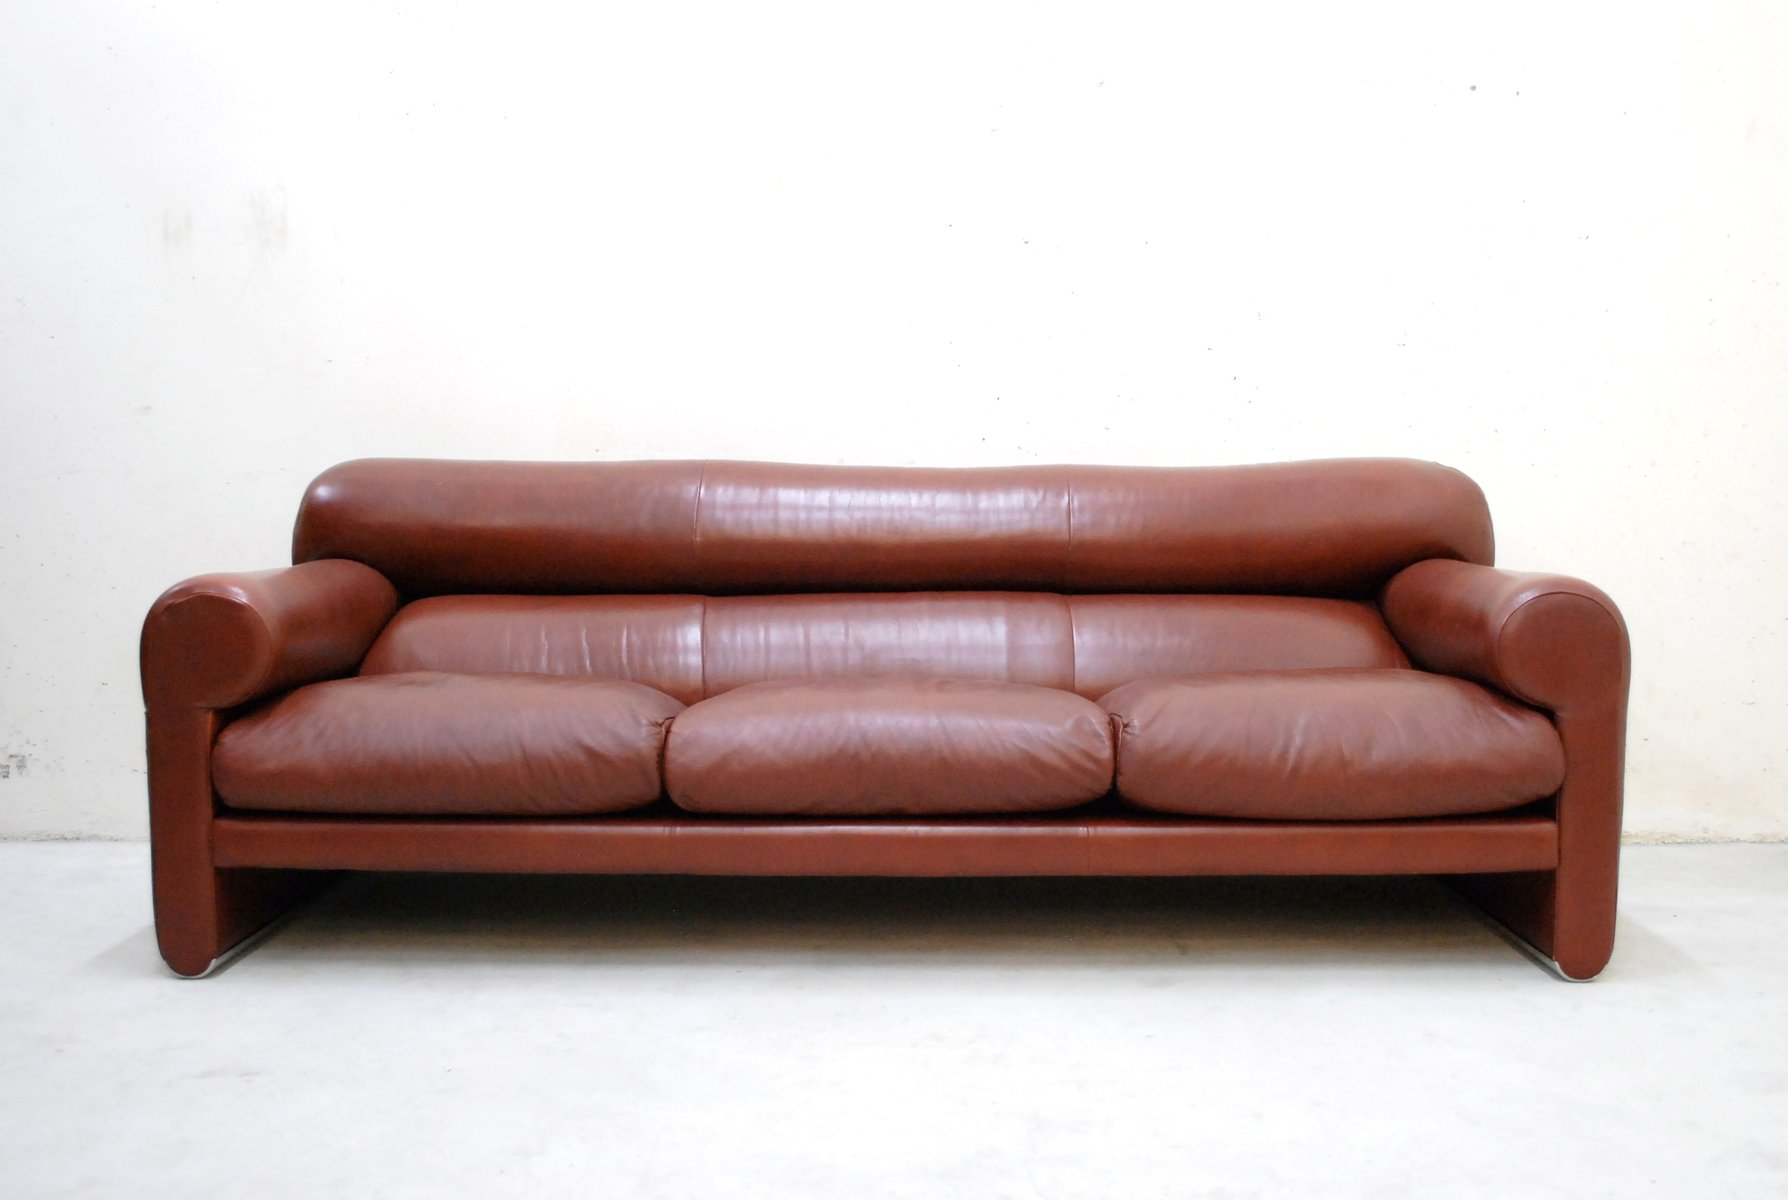 Italian Leather Sofa By Sergio Mazza And Giuliana Gramigna For Poltrona Frau